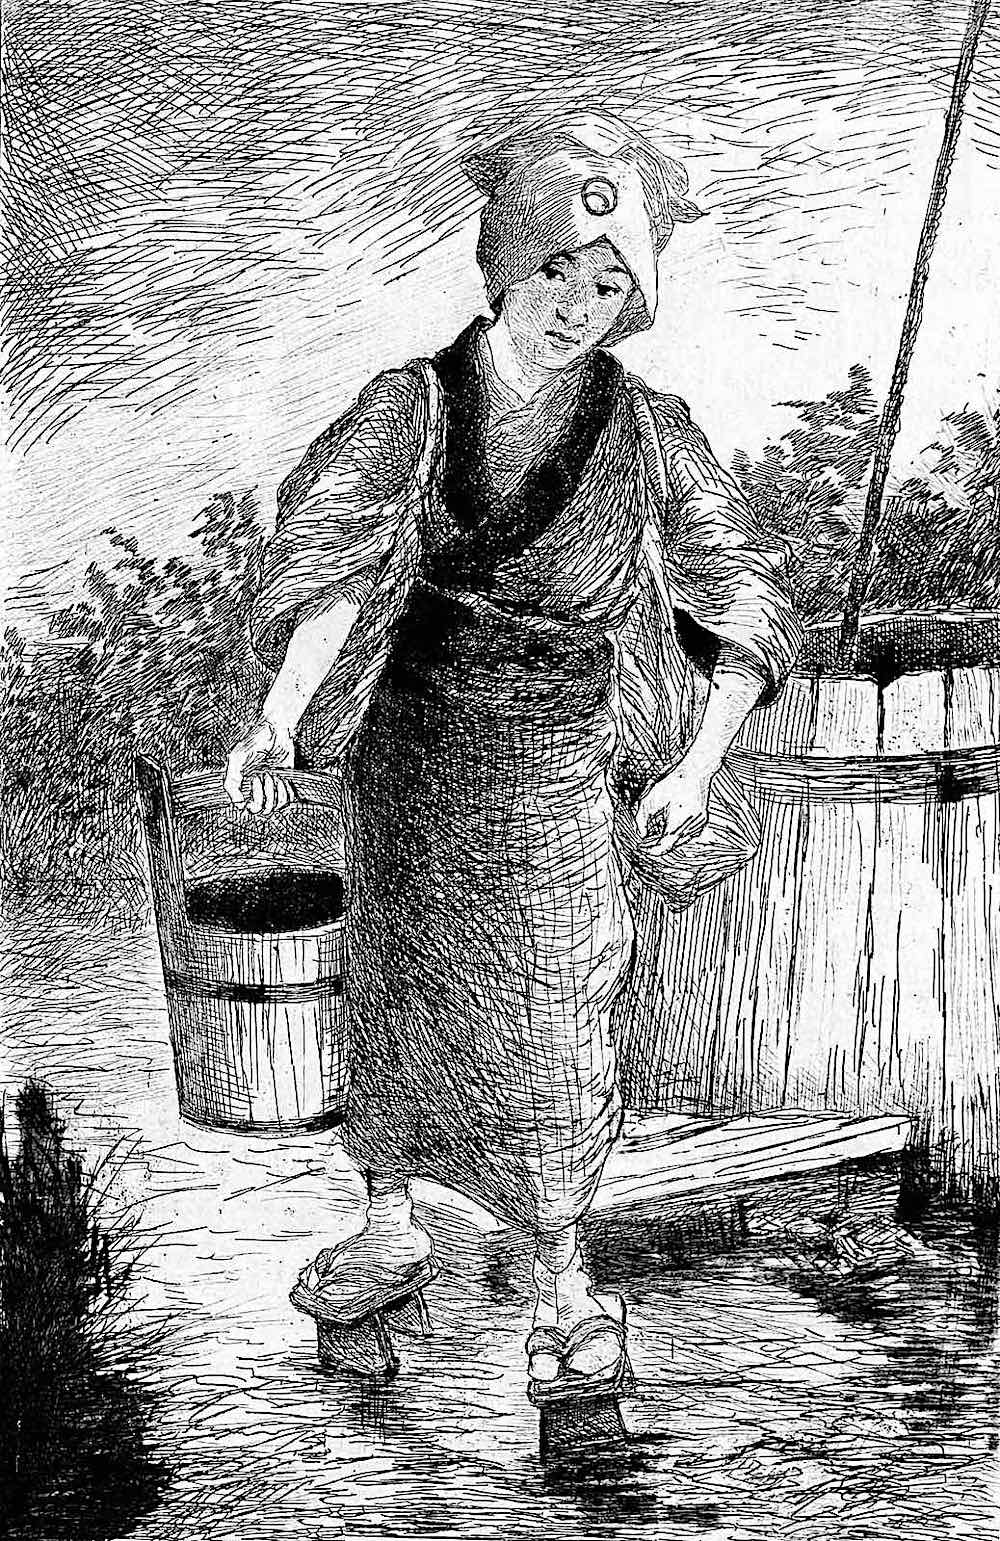 a girl's job in 1886 Japan illustrated